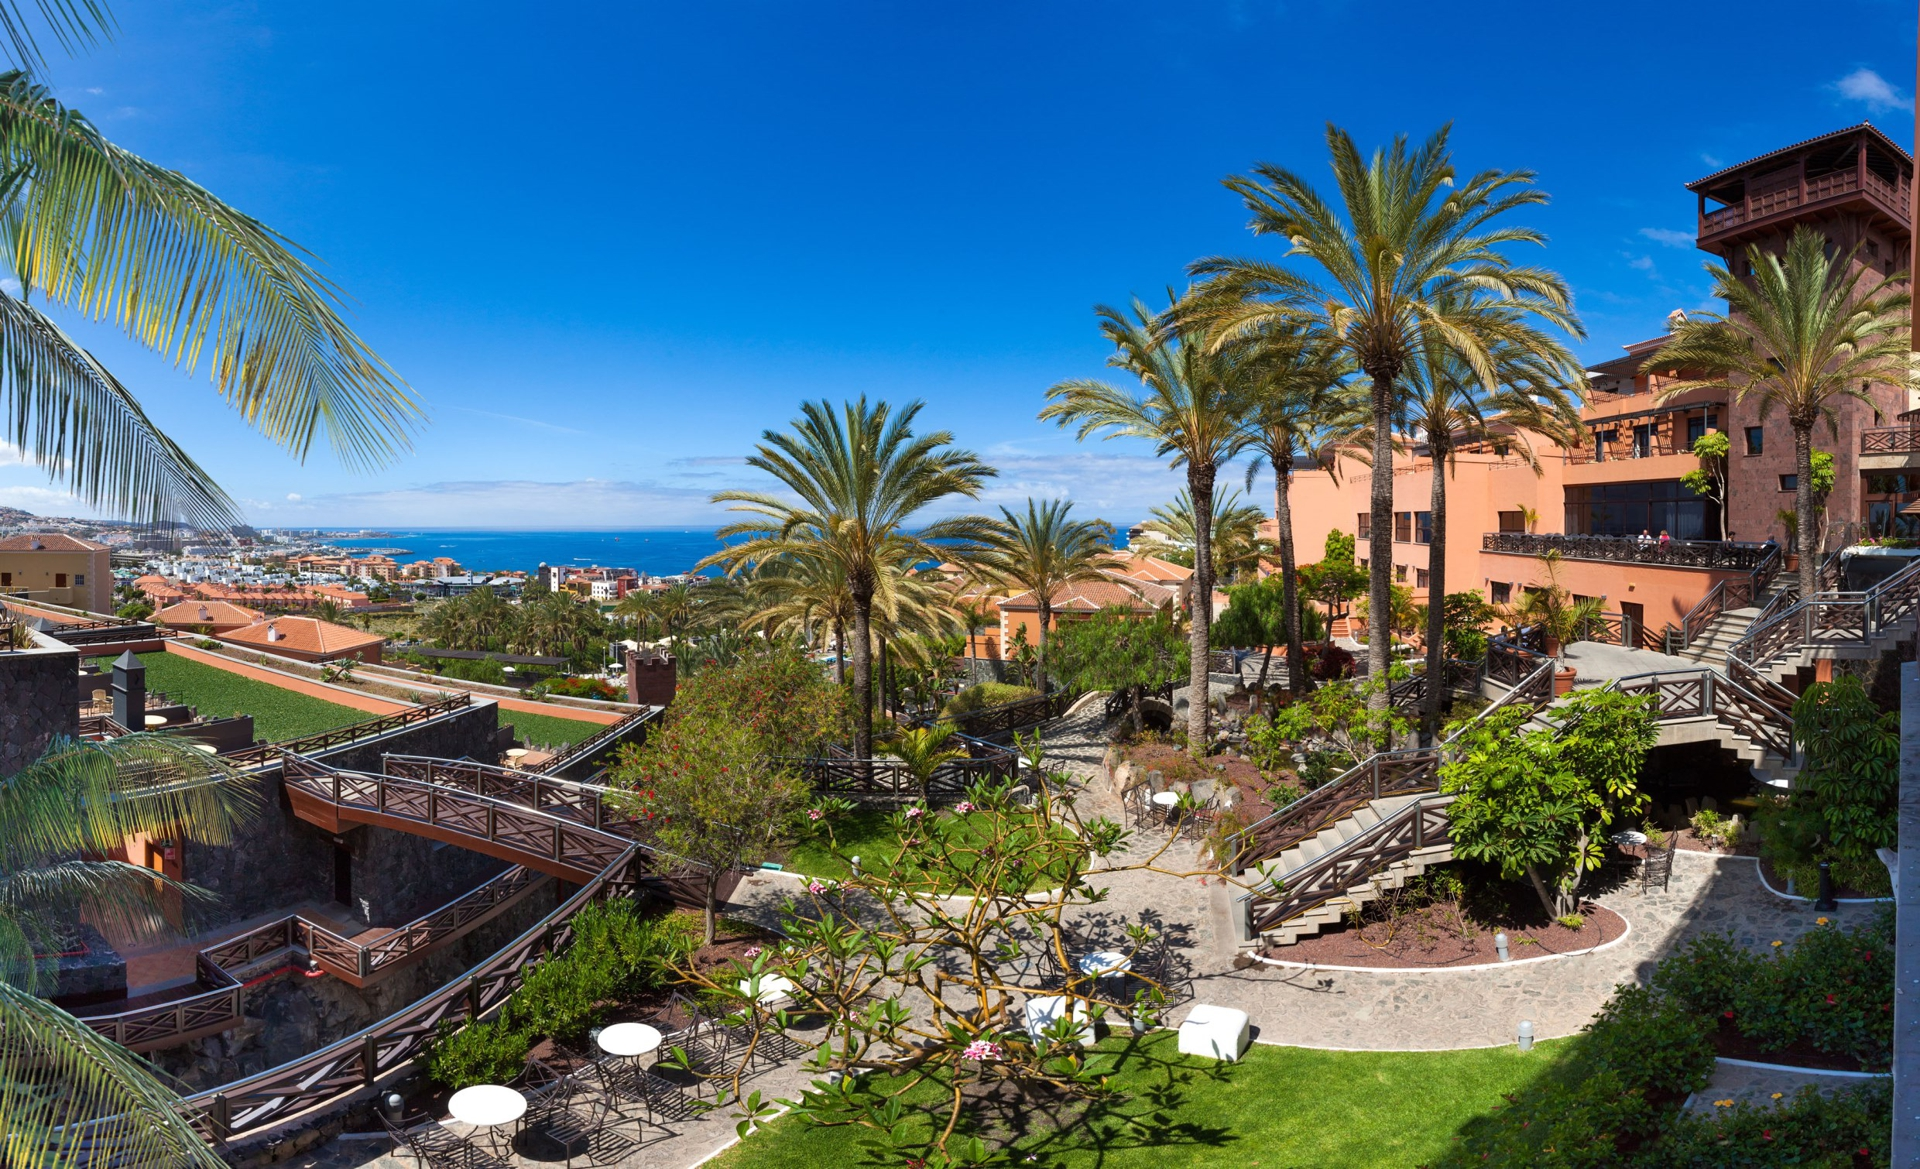 Spains Hispania snaps up Tenerife hotel for m